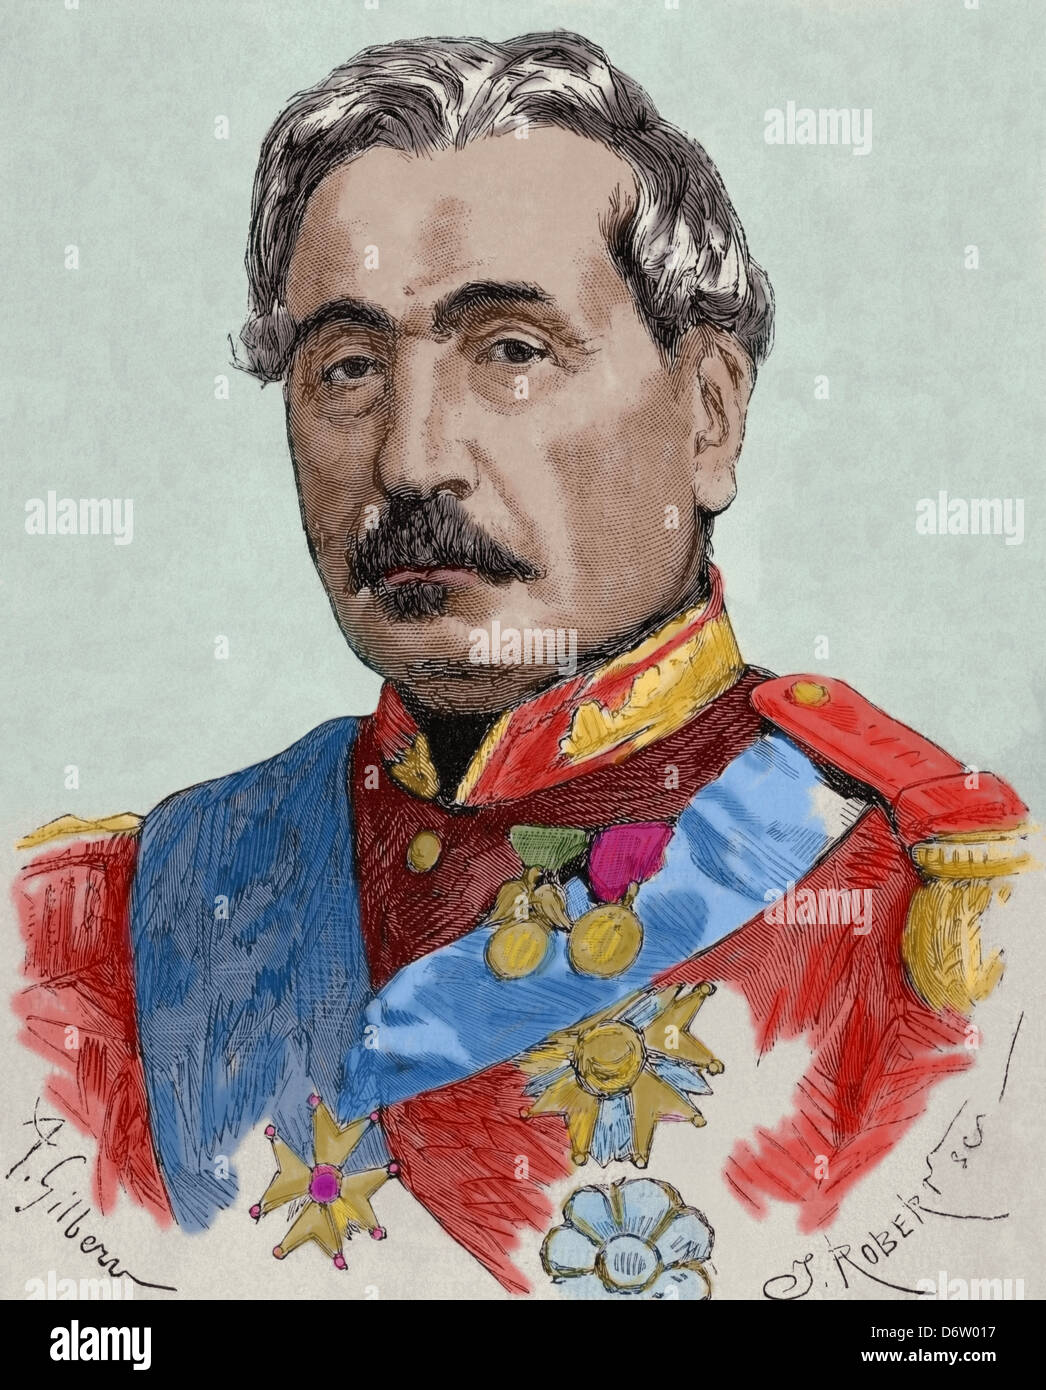 Charles Cousin-Montauban (1796-1878). French general and statesman. Engraving by Robertsen. Colored. - Stock Image